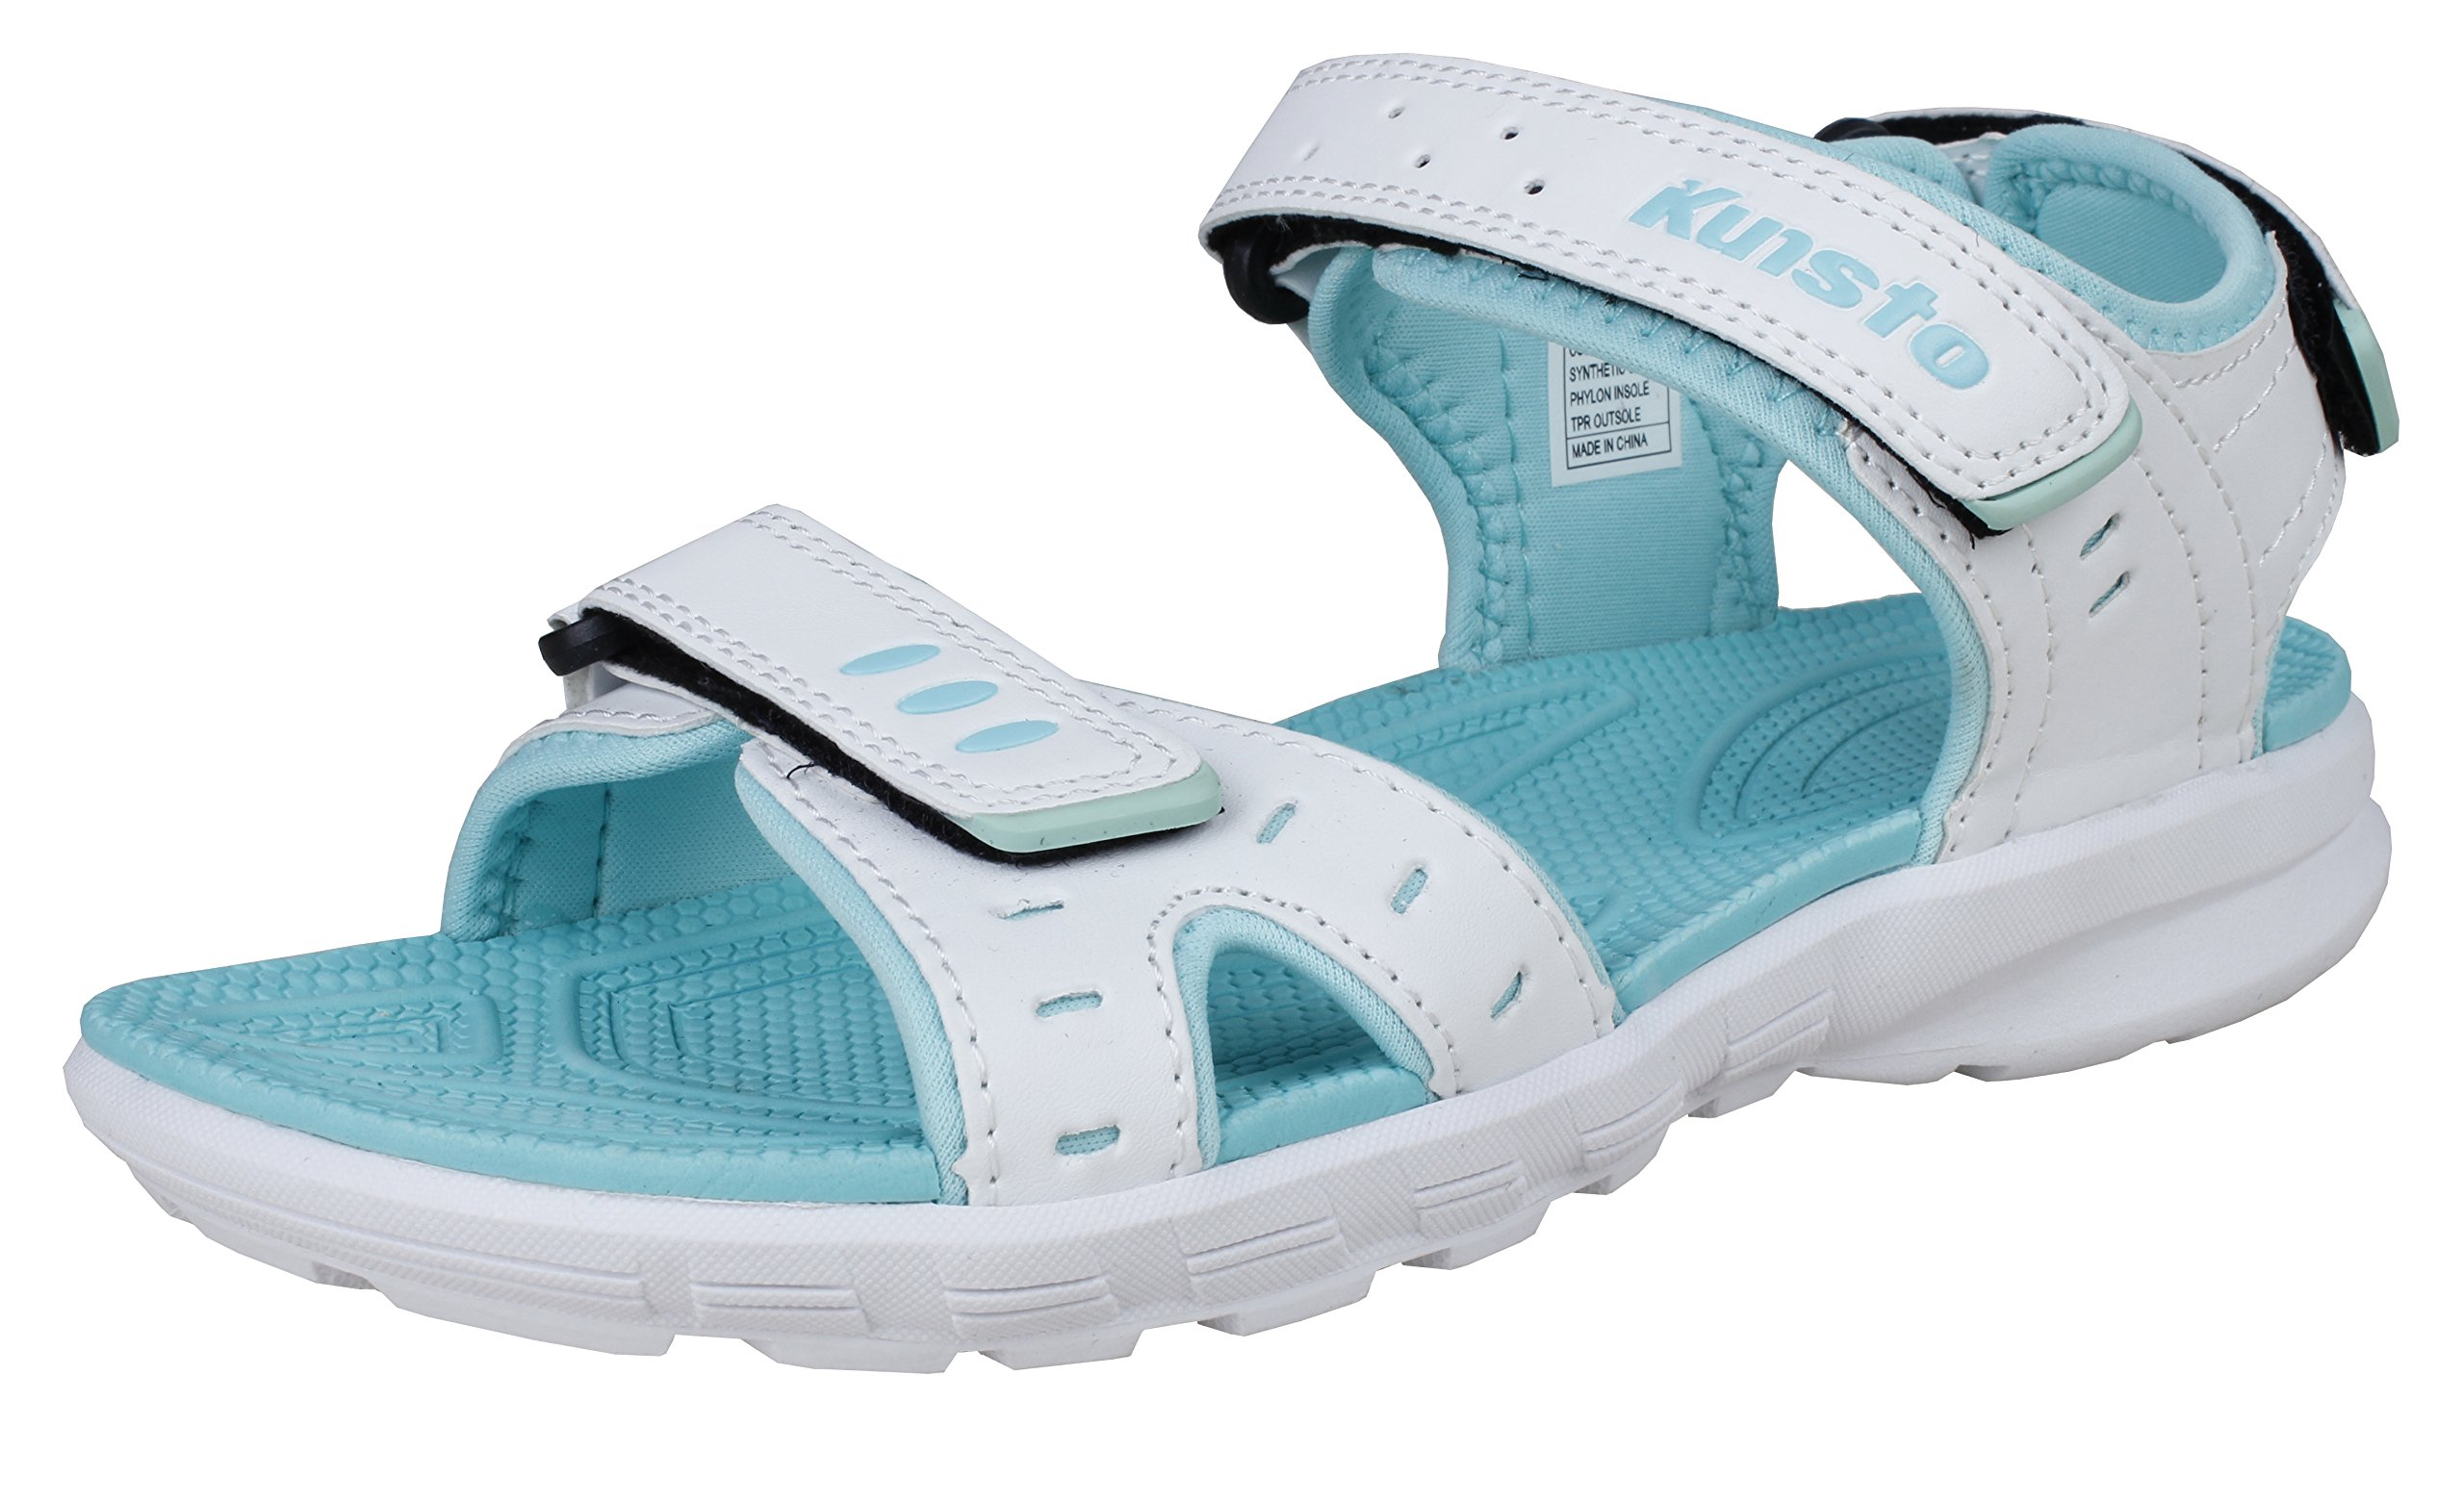 Kunsto Women's Outdoor Water Athletic Sporty Sandals Blue Size 8 by Kunsto